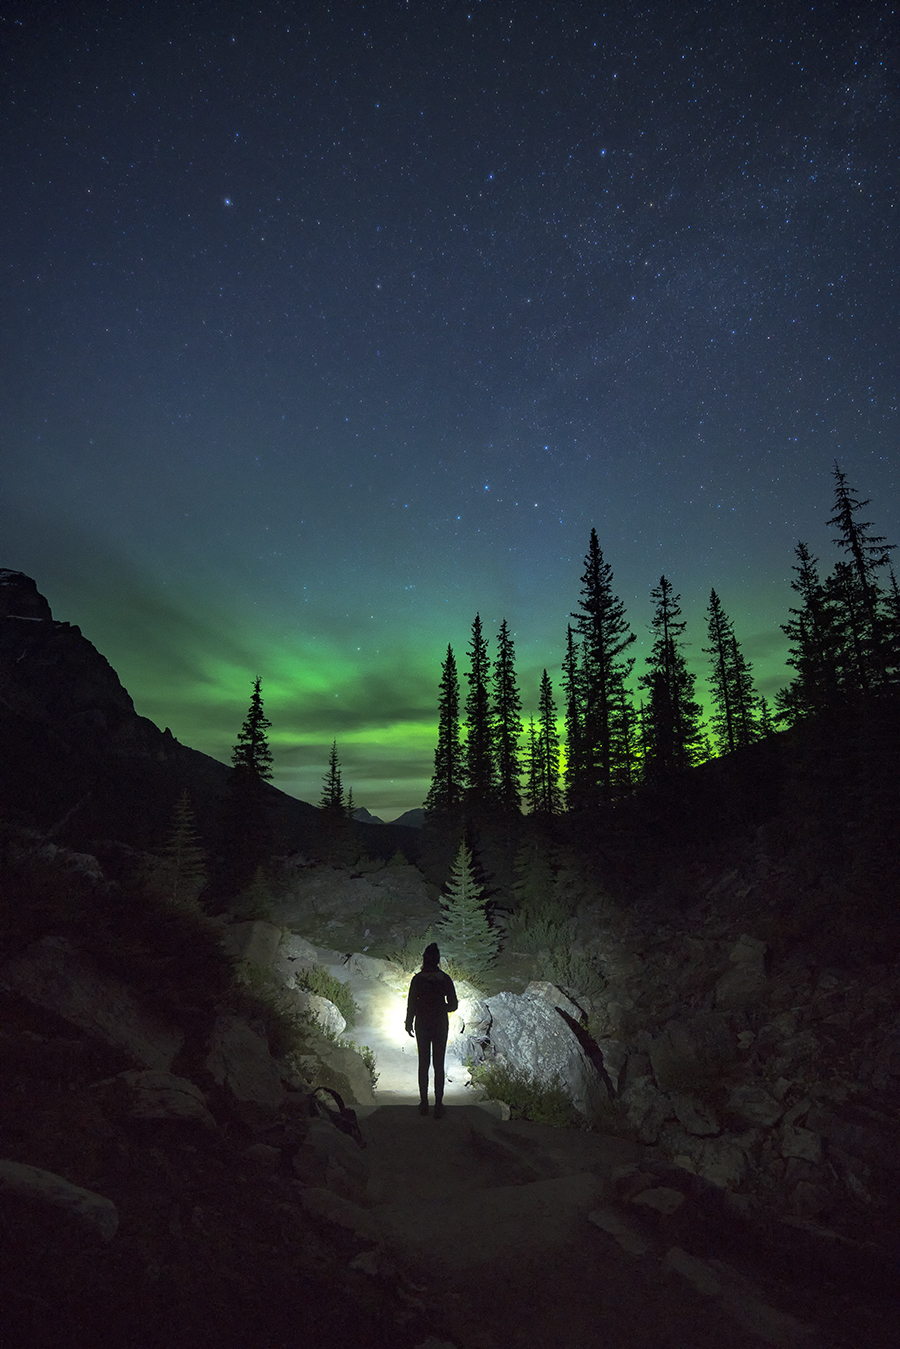 Northern Lights glowing above the mountains